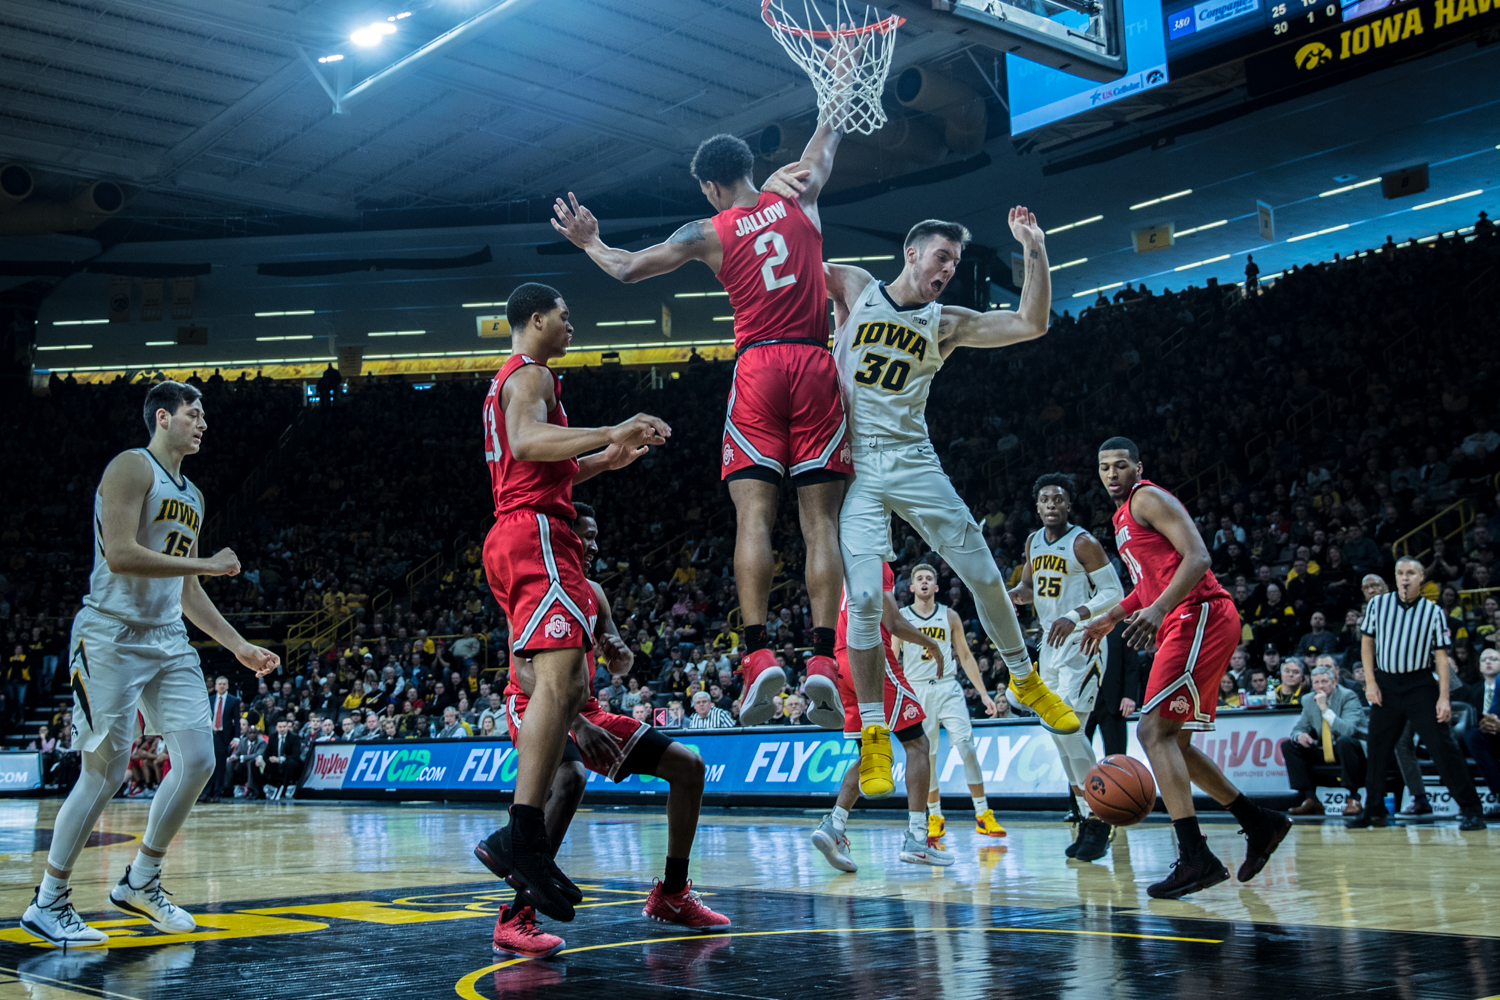 Iowa+guard+Connor+McCaffery+drives+to+the+net+during+a+men%27s+basketball+matchup+between+Ohio+State+and+Iowa+at+Carver-Hawkeye+Arena+on+Saturday%2C+January+12%2C+2019.+The+Hawkeyes+defeated+the+Buckeyes%2C+72-62.